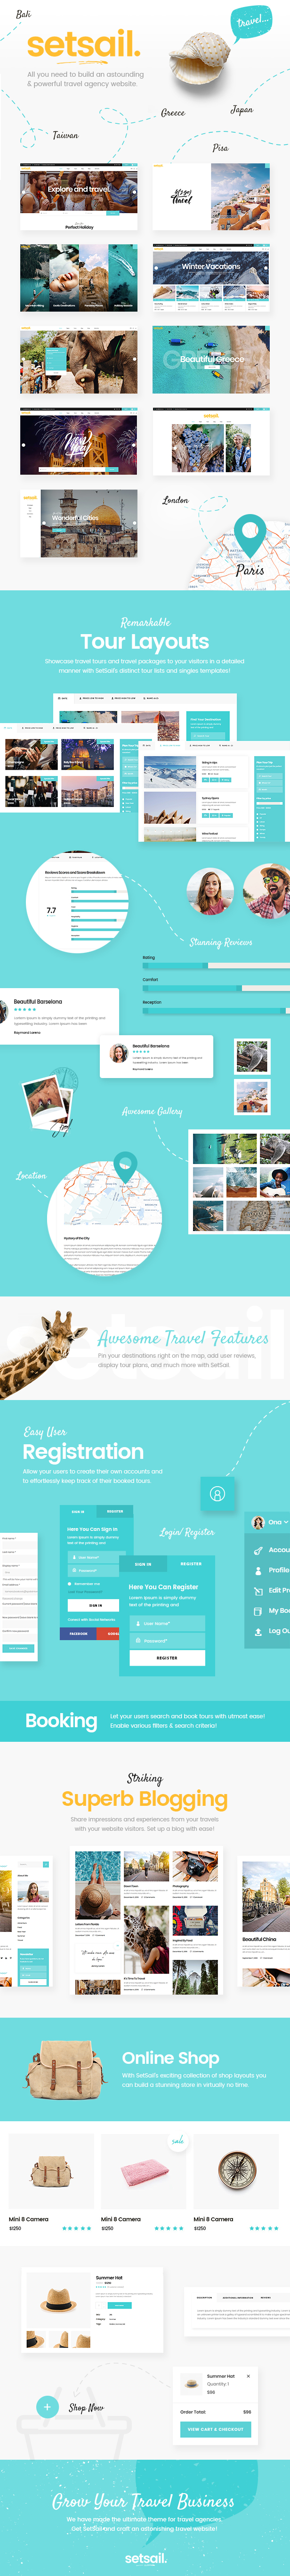 SetSail - Travel Agency Theme - 1